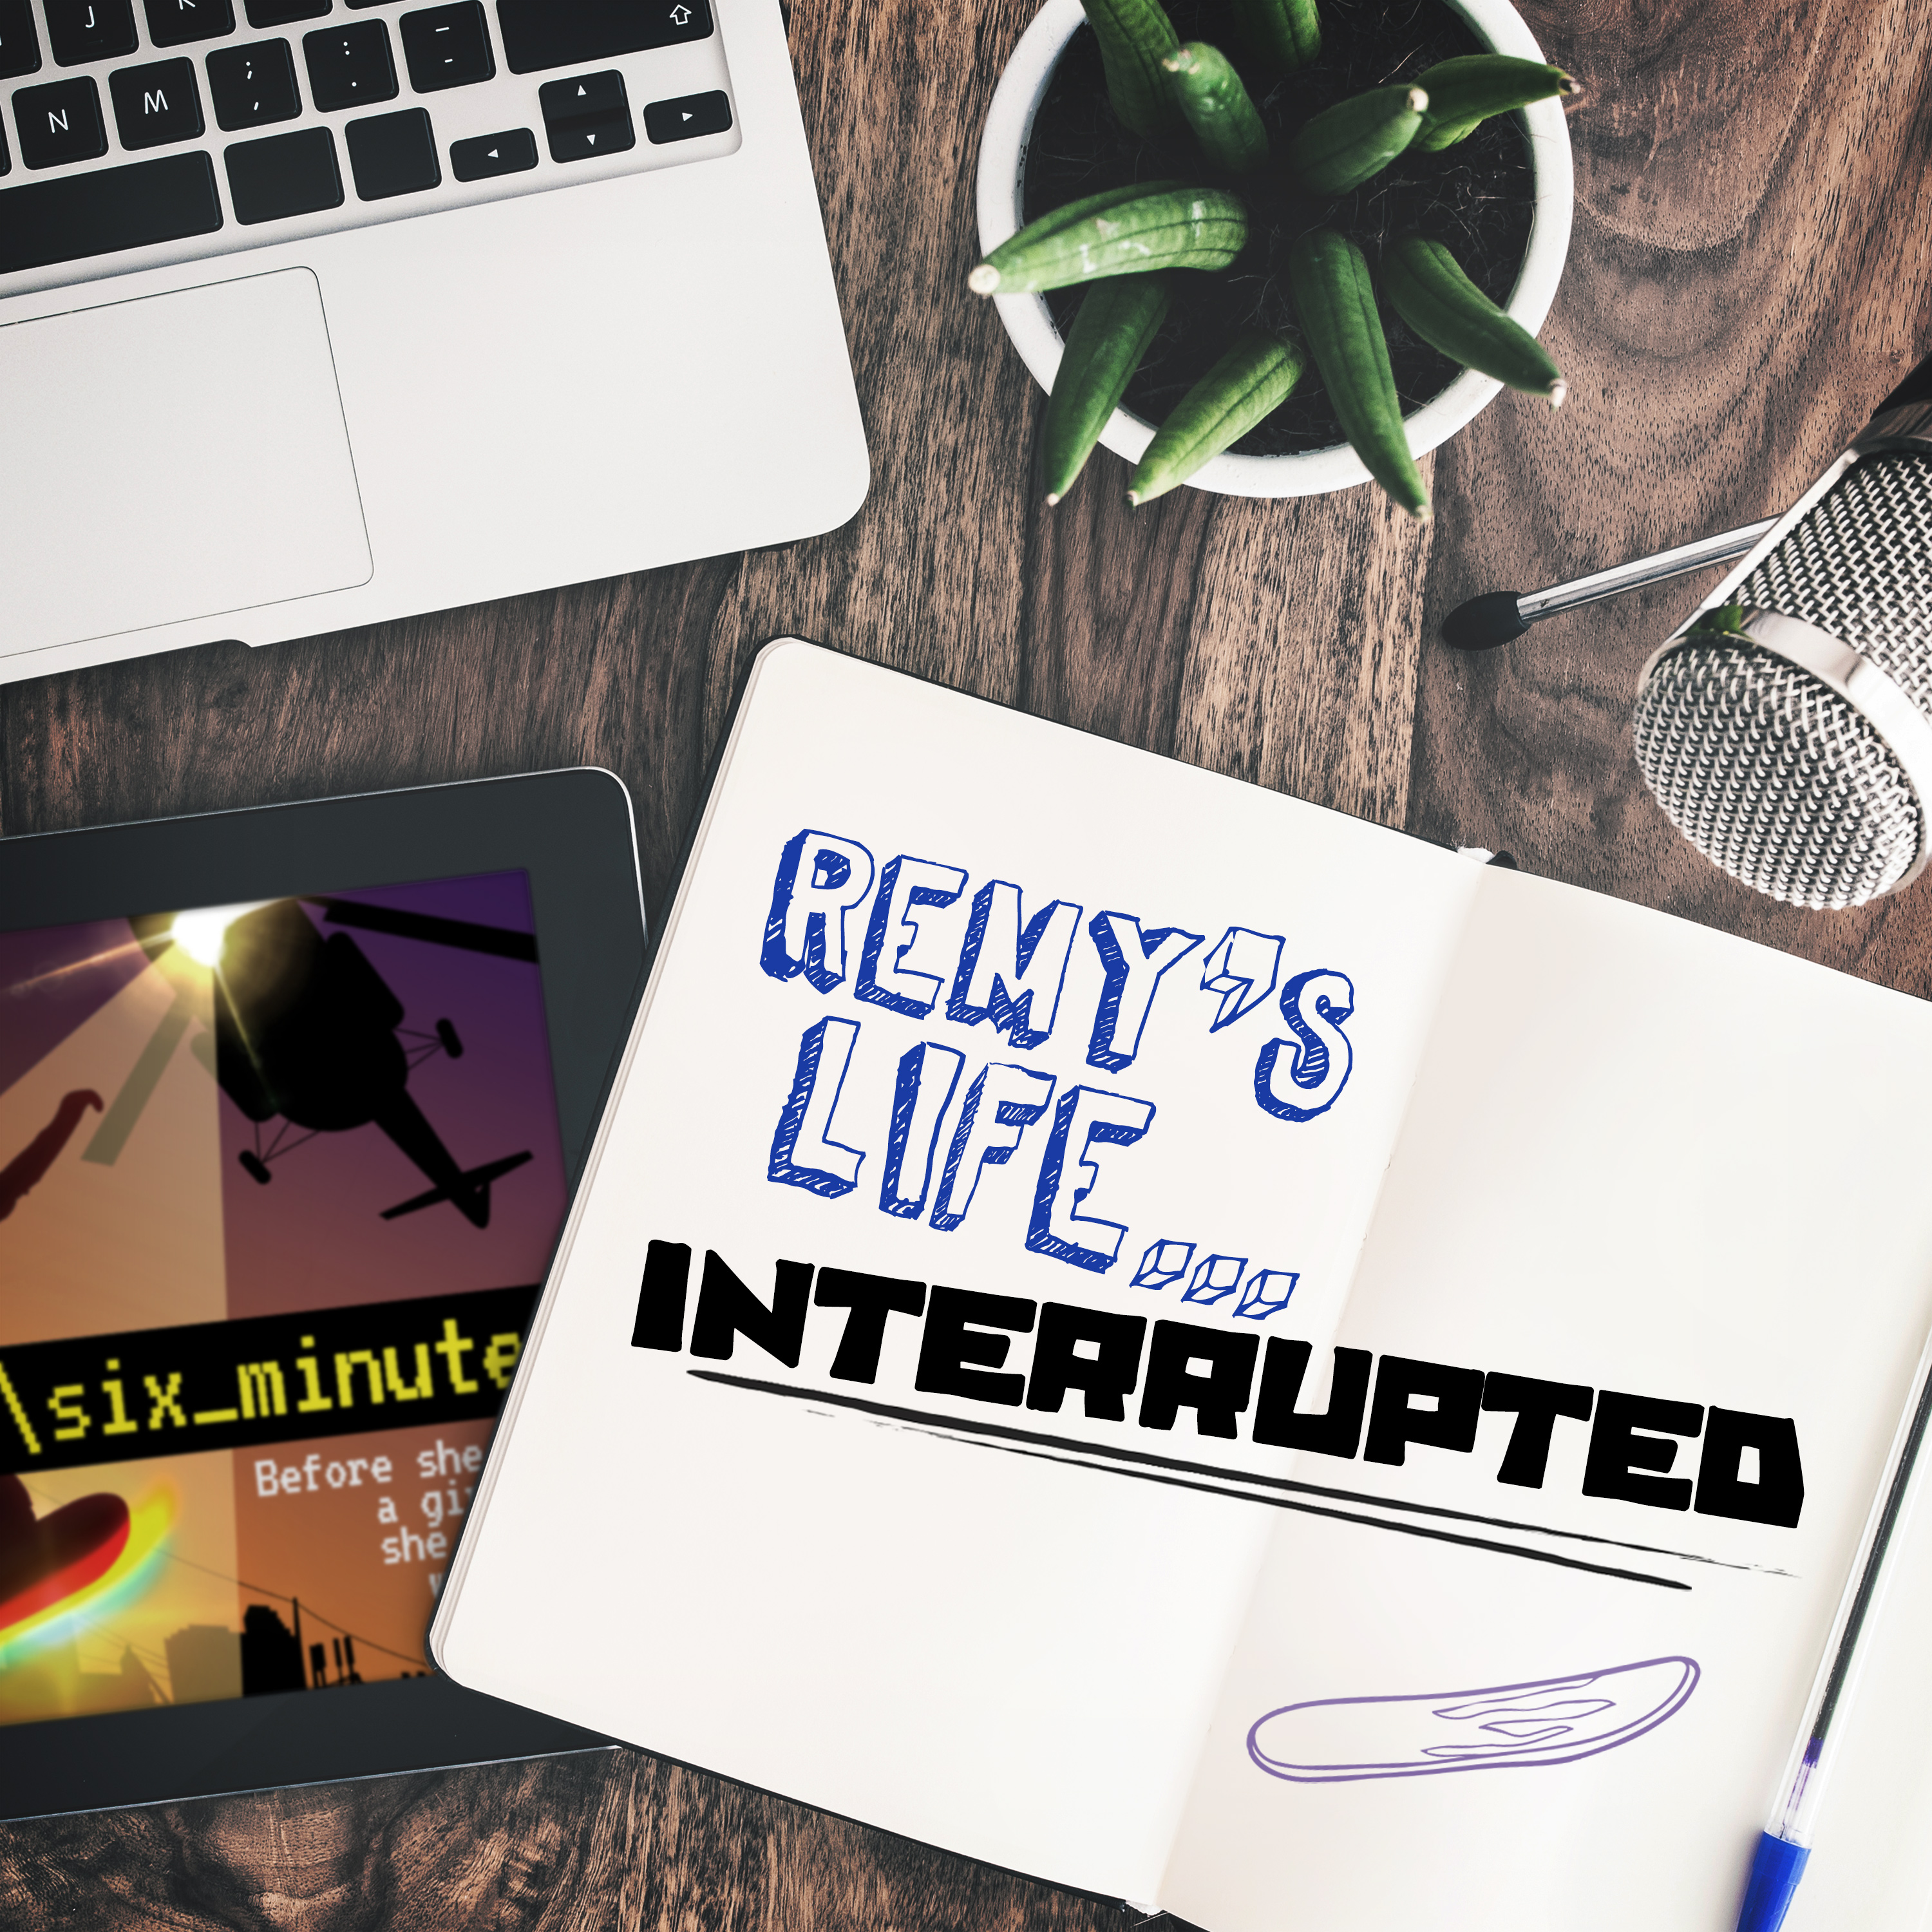 Remy's Life Interrupted: EP77